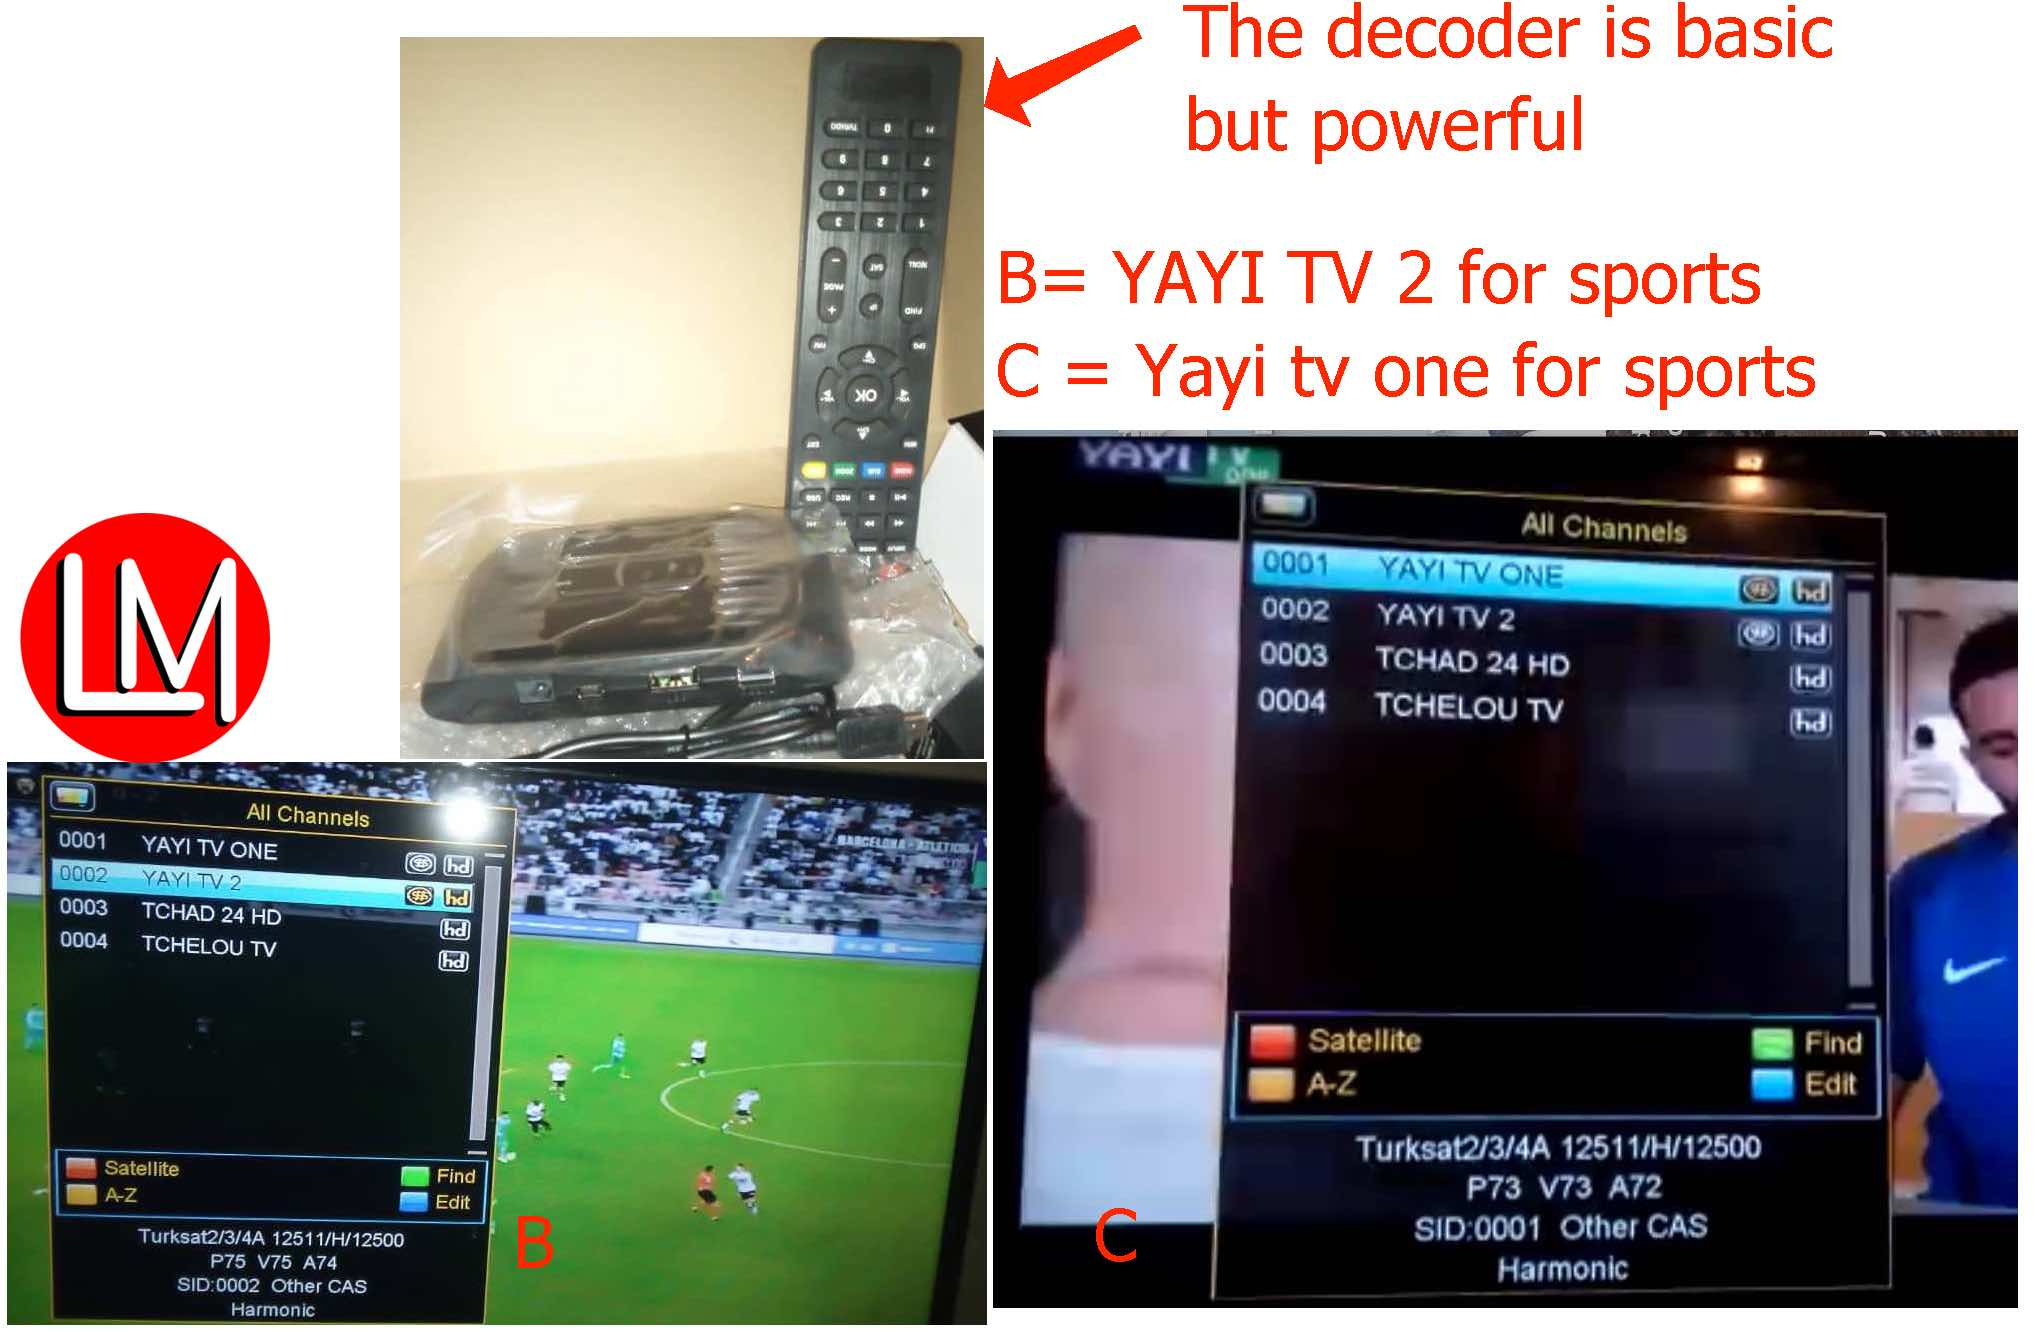 Updates on Yayi TV: Decoder Sales, Frequencies & Channels